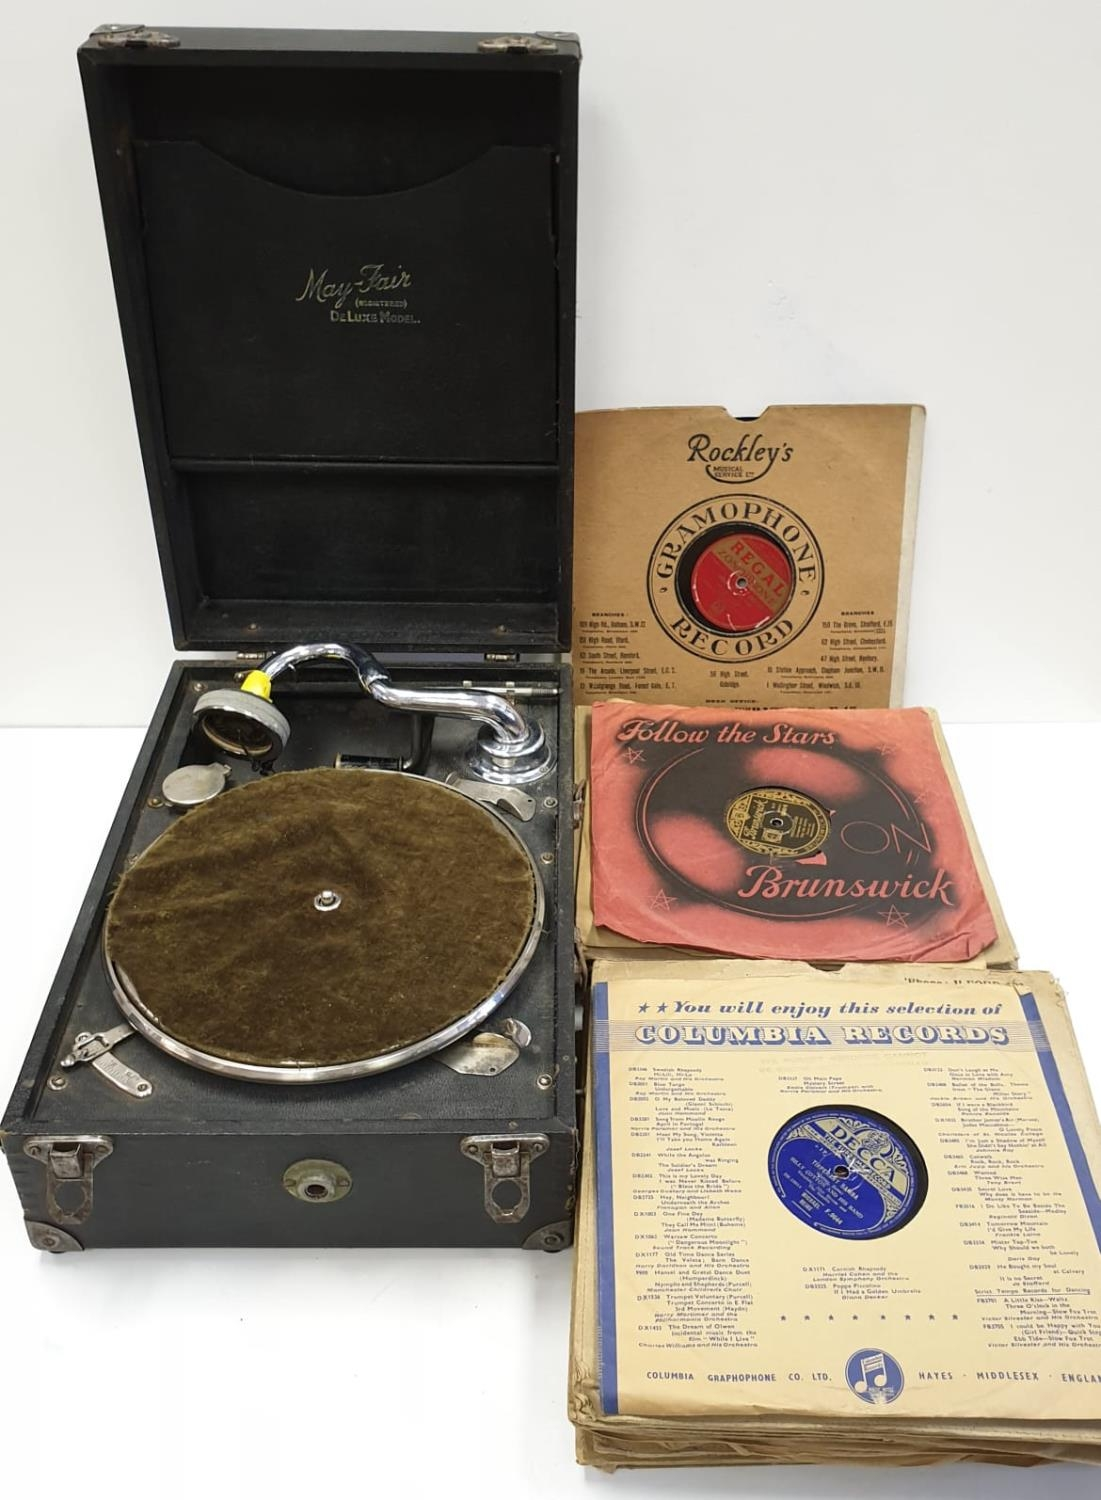 Vintage 1940's May-Fair Deluxe Wind-up Portable record player with 40 LP's. Full working order. Good